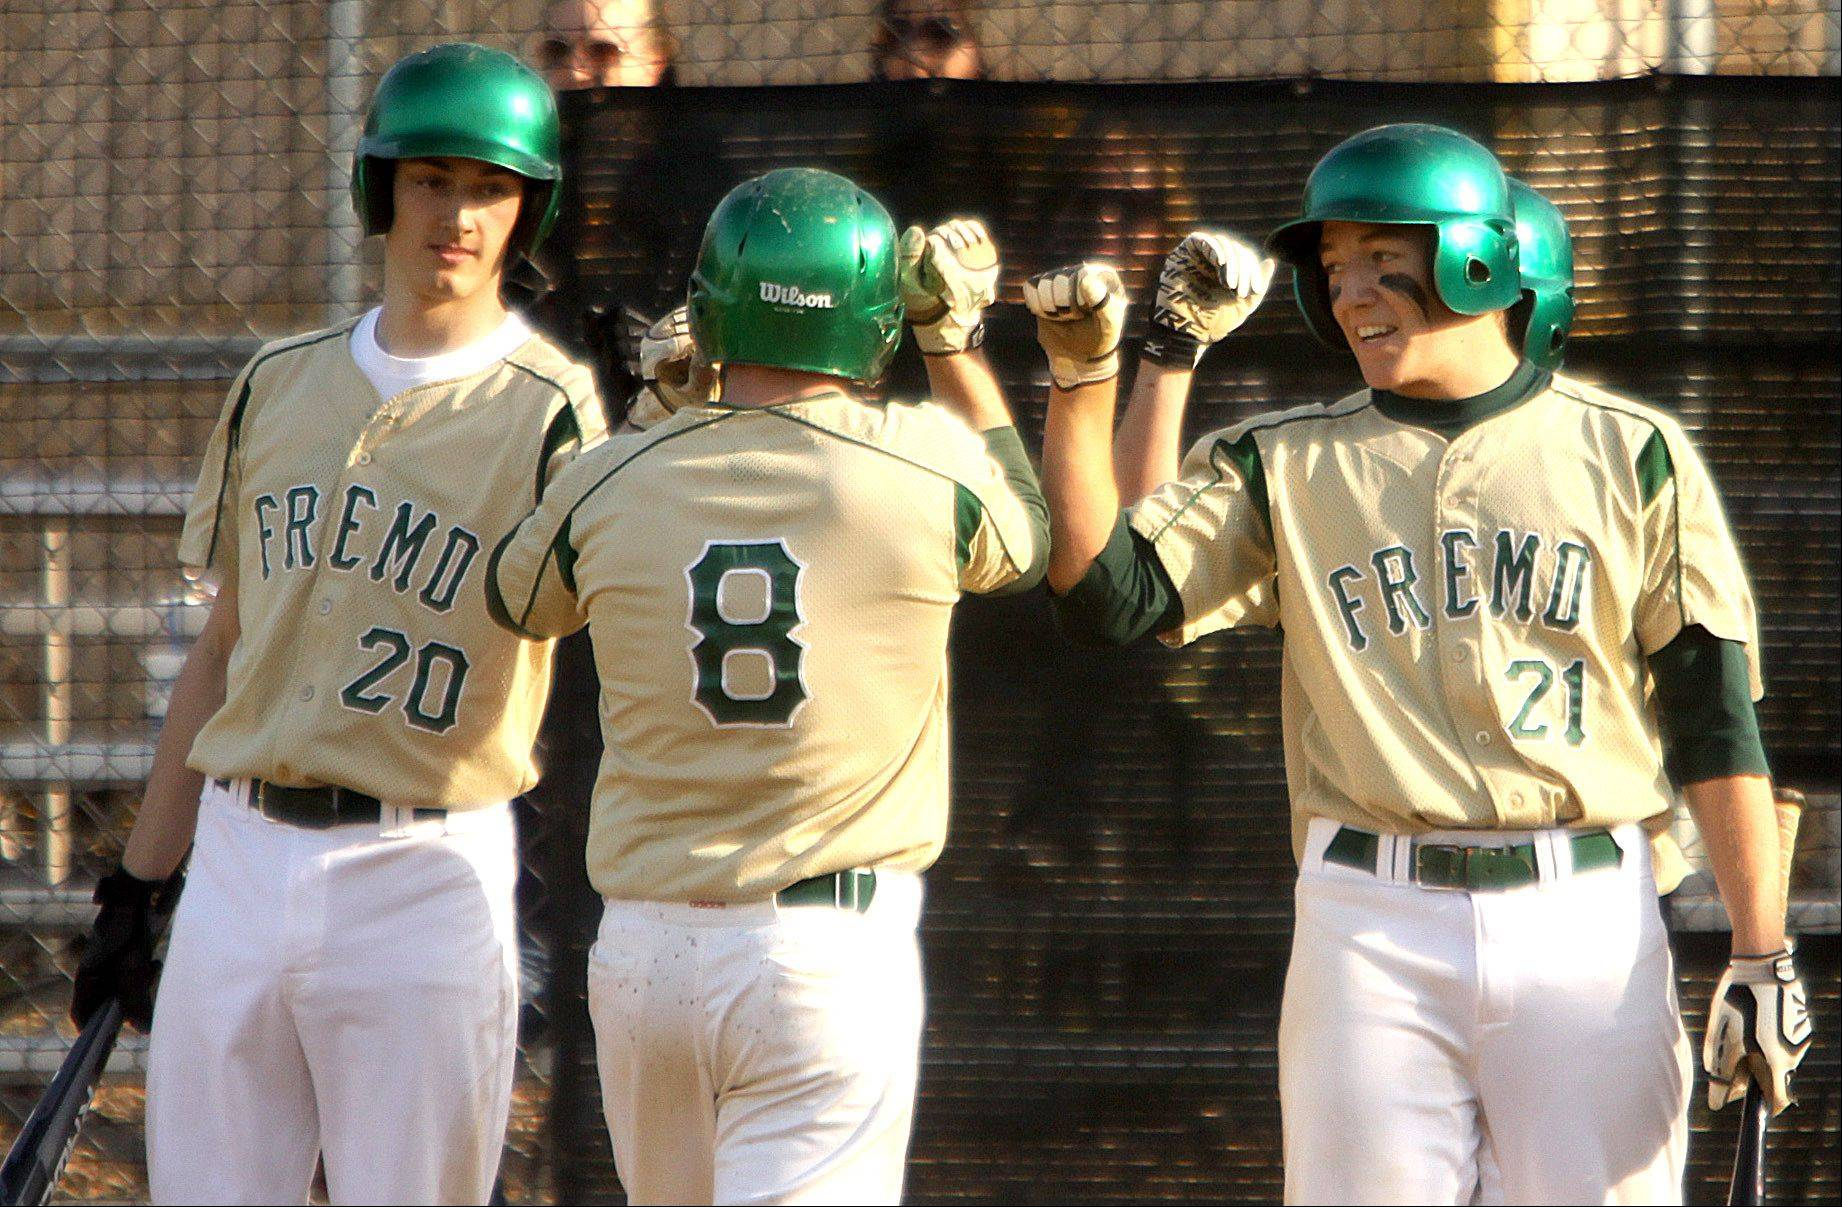 Fremd's Sam Beutler, center, is congratulated by teammates Austin Jetel, left, and Marcus Middlebrook after Beutler belted a home run against Schaumburg during Monday's baseball game in Palatine.